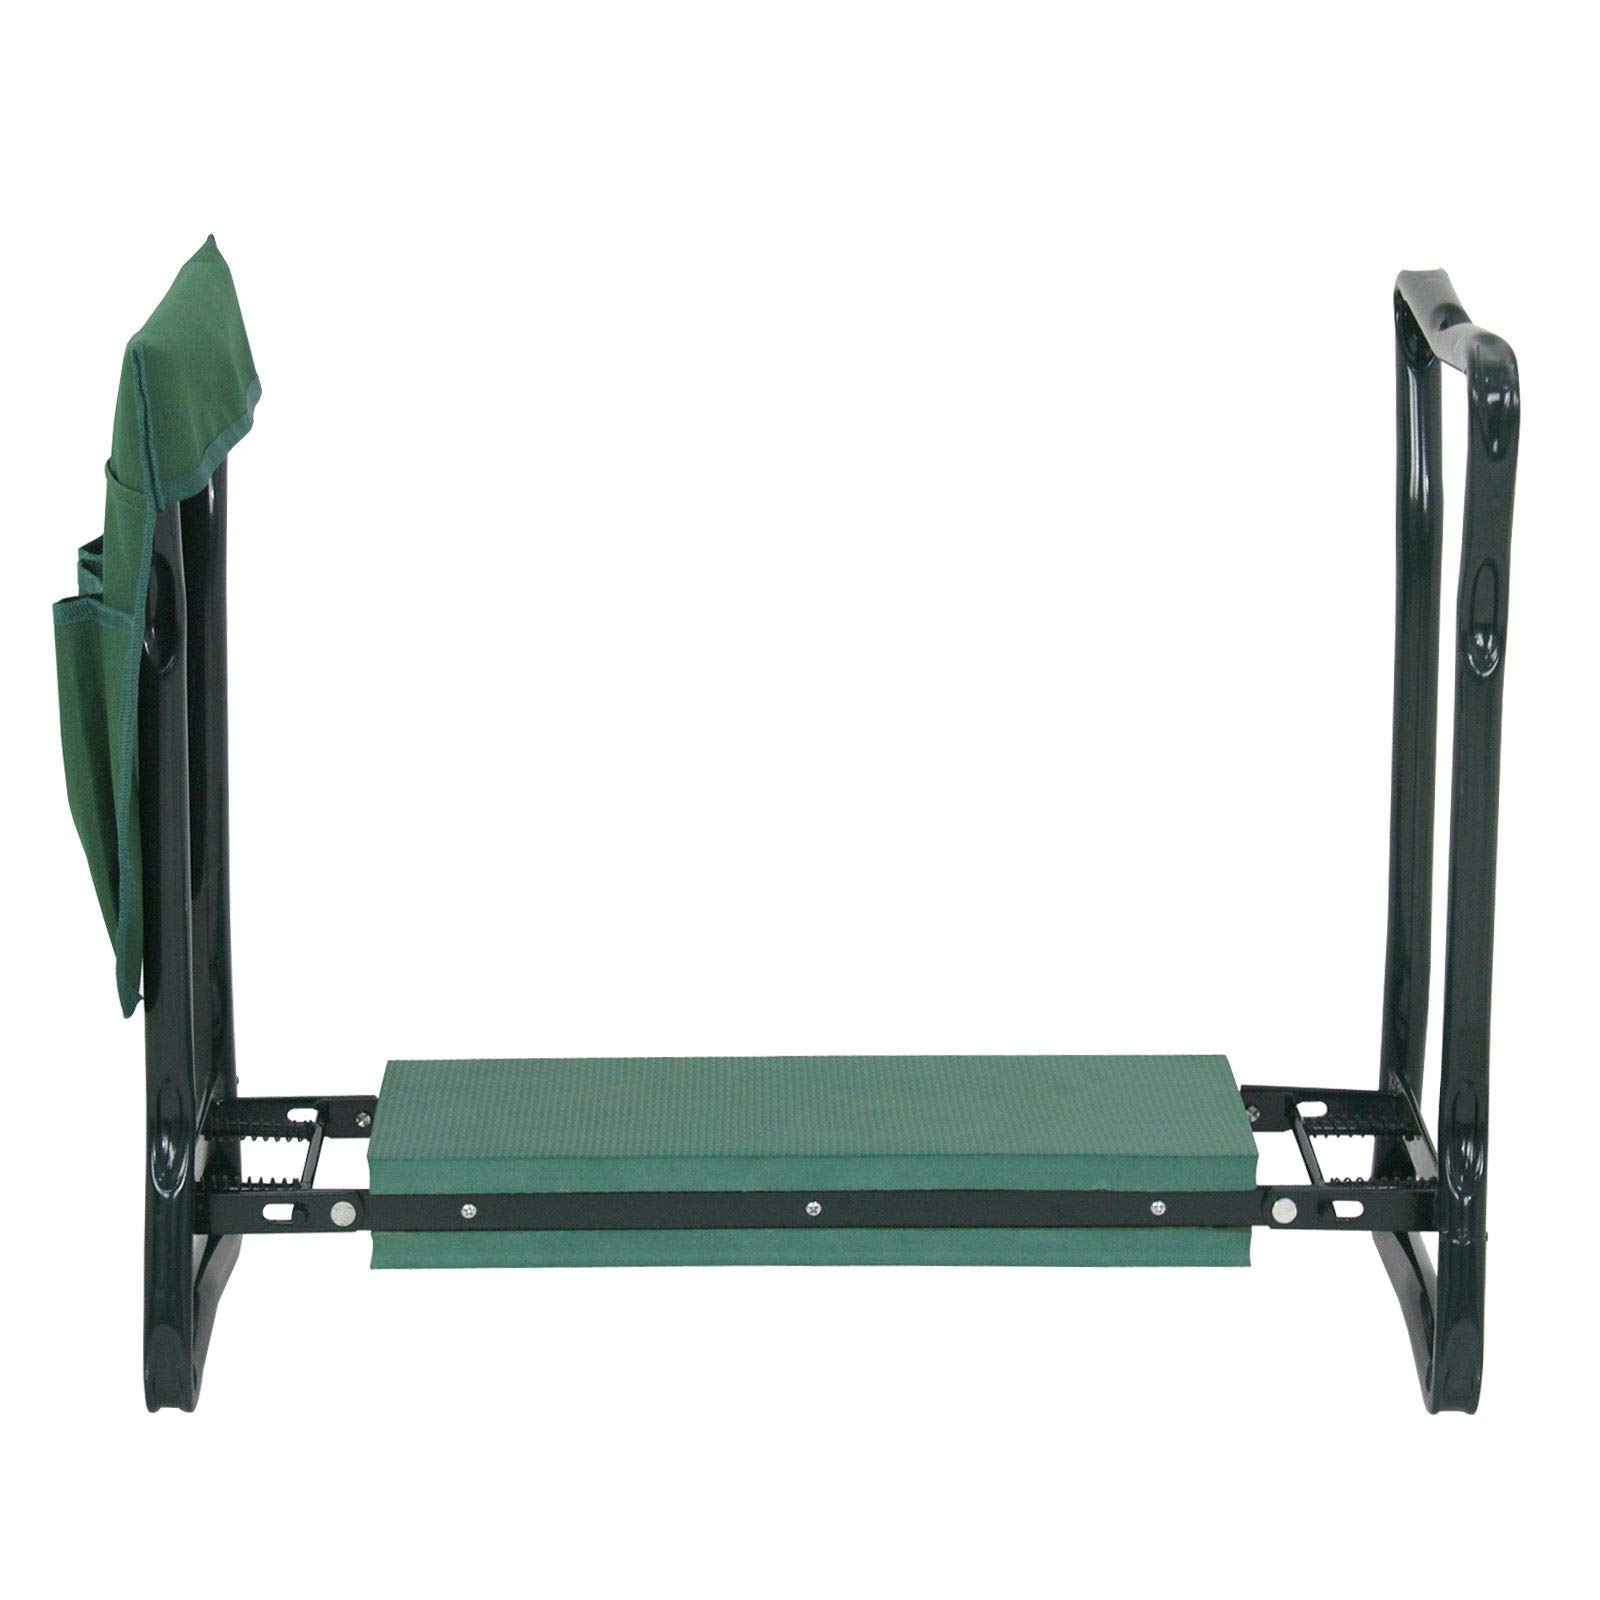 (GG) Garden Kneeler Seat w/EVA Folding Portable Bench Kneeling Pad and Tool Pouch New by Good Grannies by (GG) (Image #3)